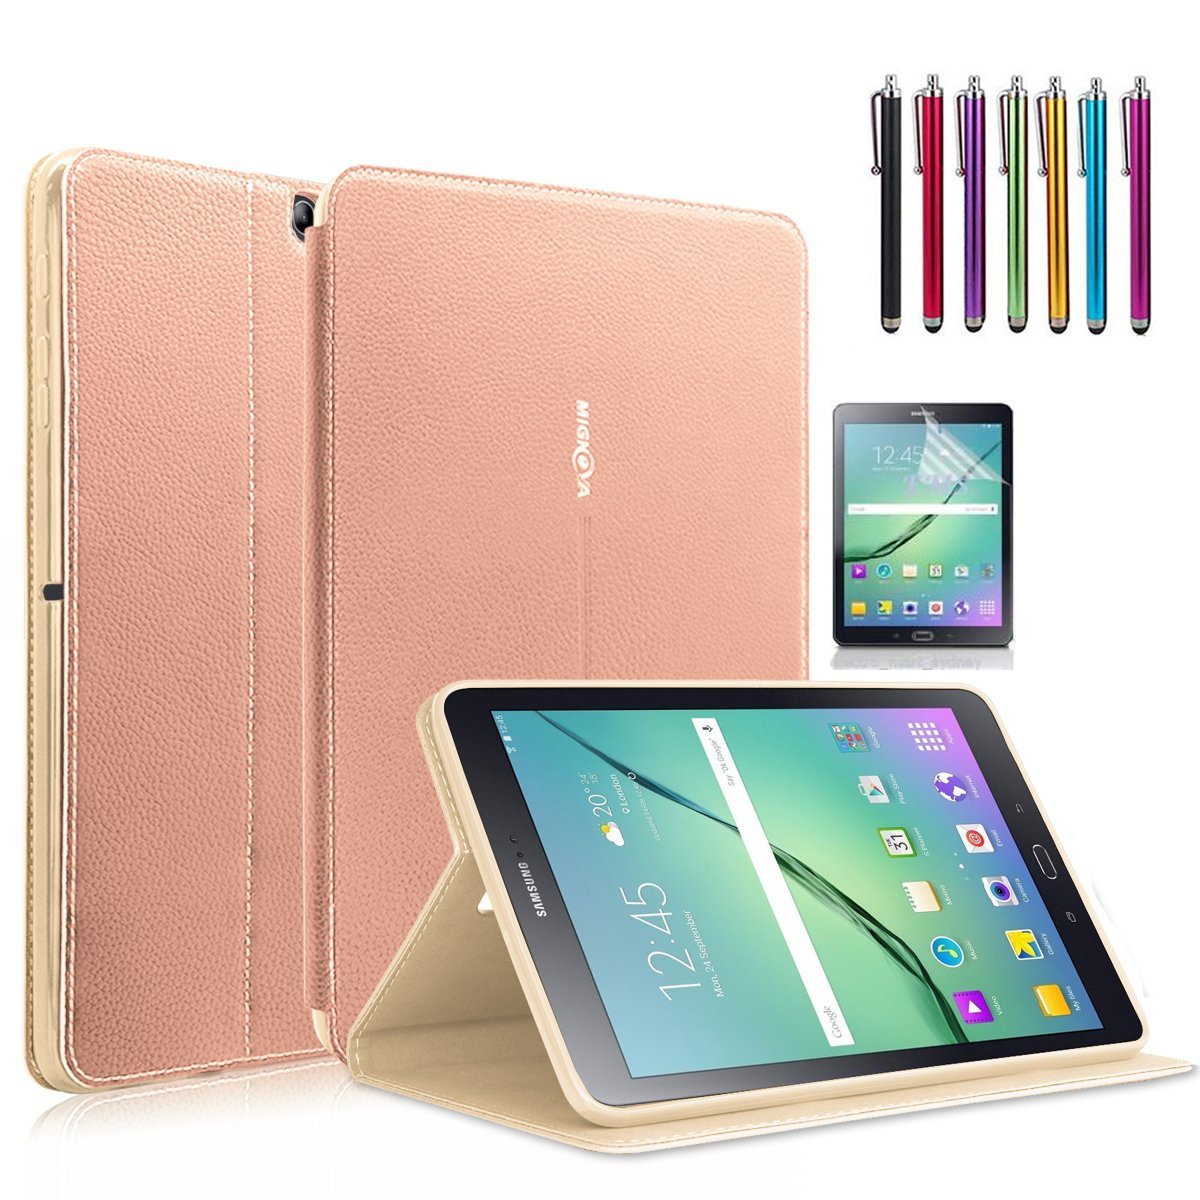 Samsung Galaxy Tab S2 8.0 Case, Mignova - Auto Sleep /Wake, Card Pocket, KickStand Feature, Premium PU Leather Folio Smart Cover Case + Screen Protector Film and stylus pen (Rose Gold)